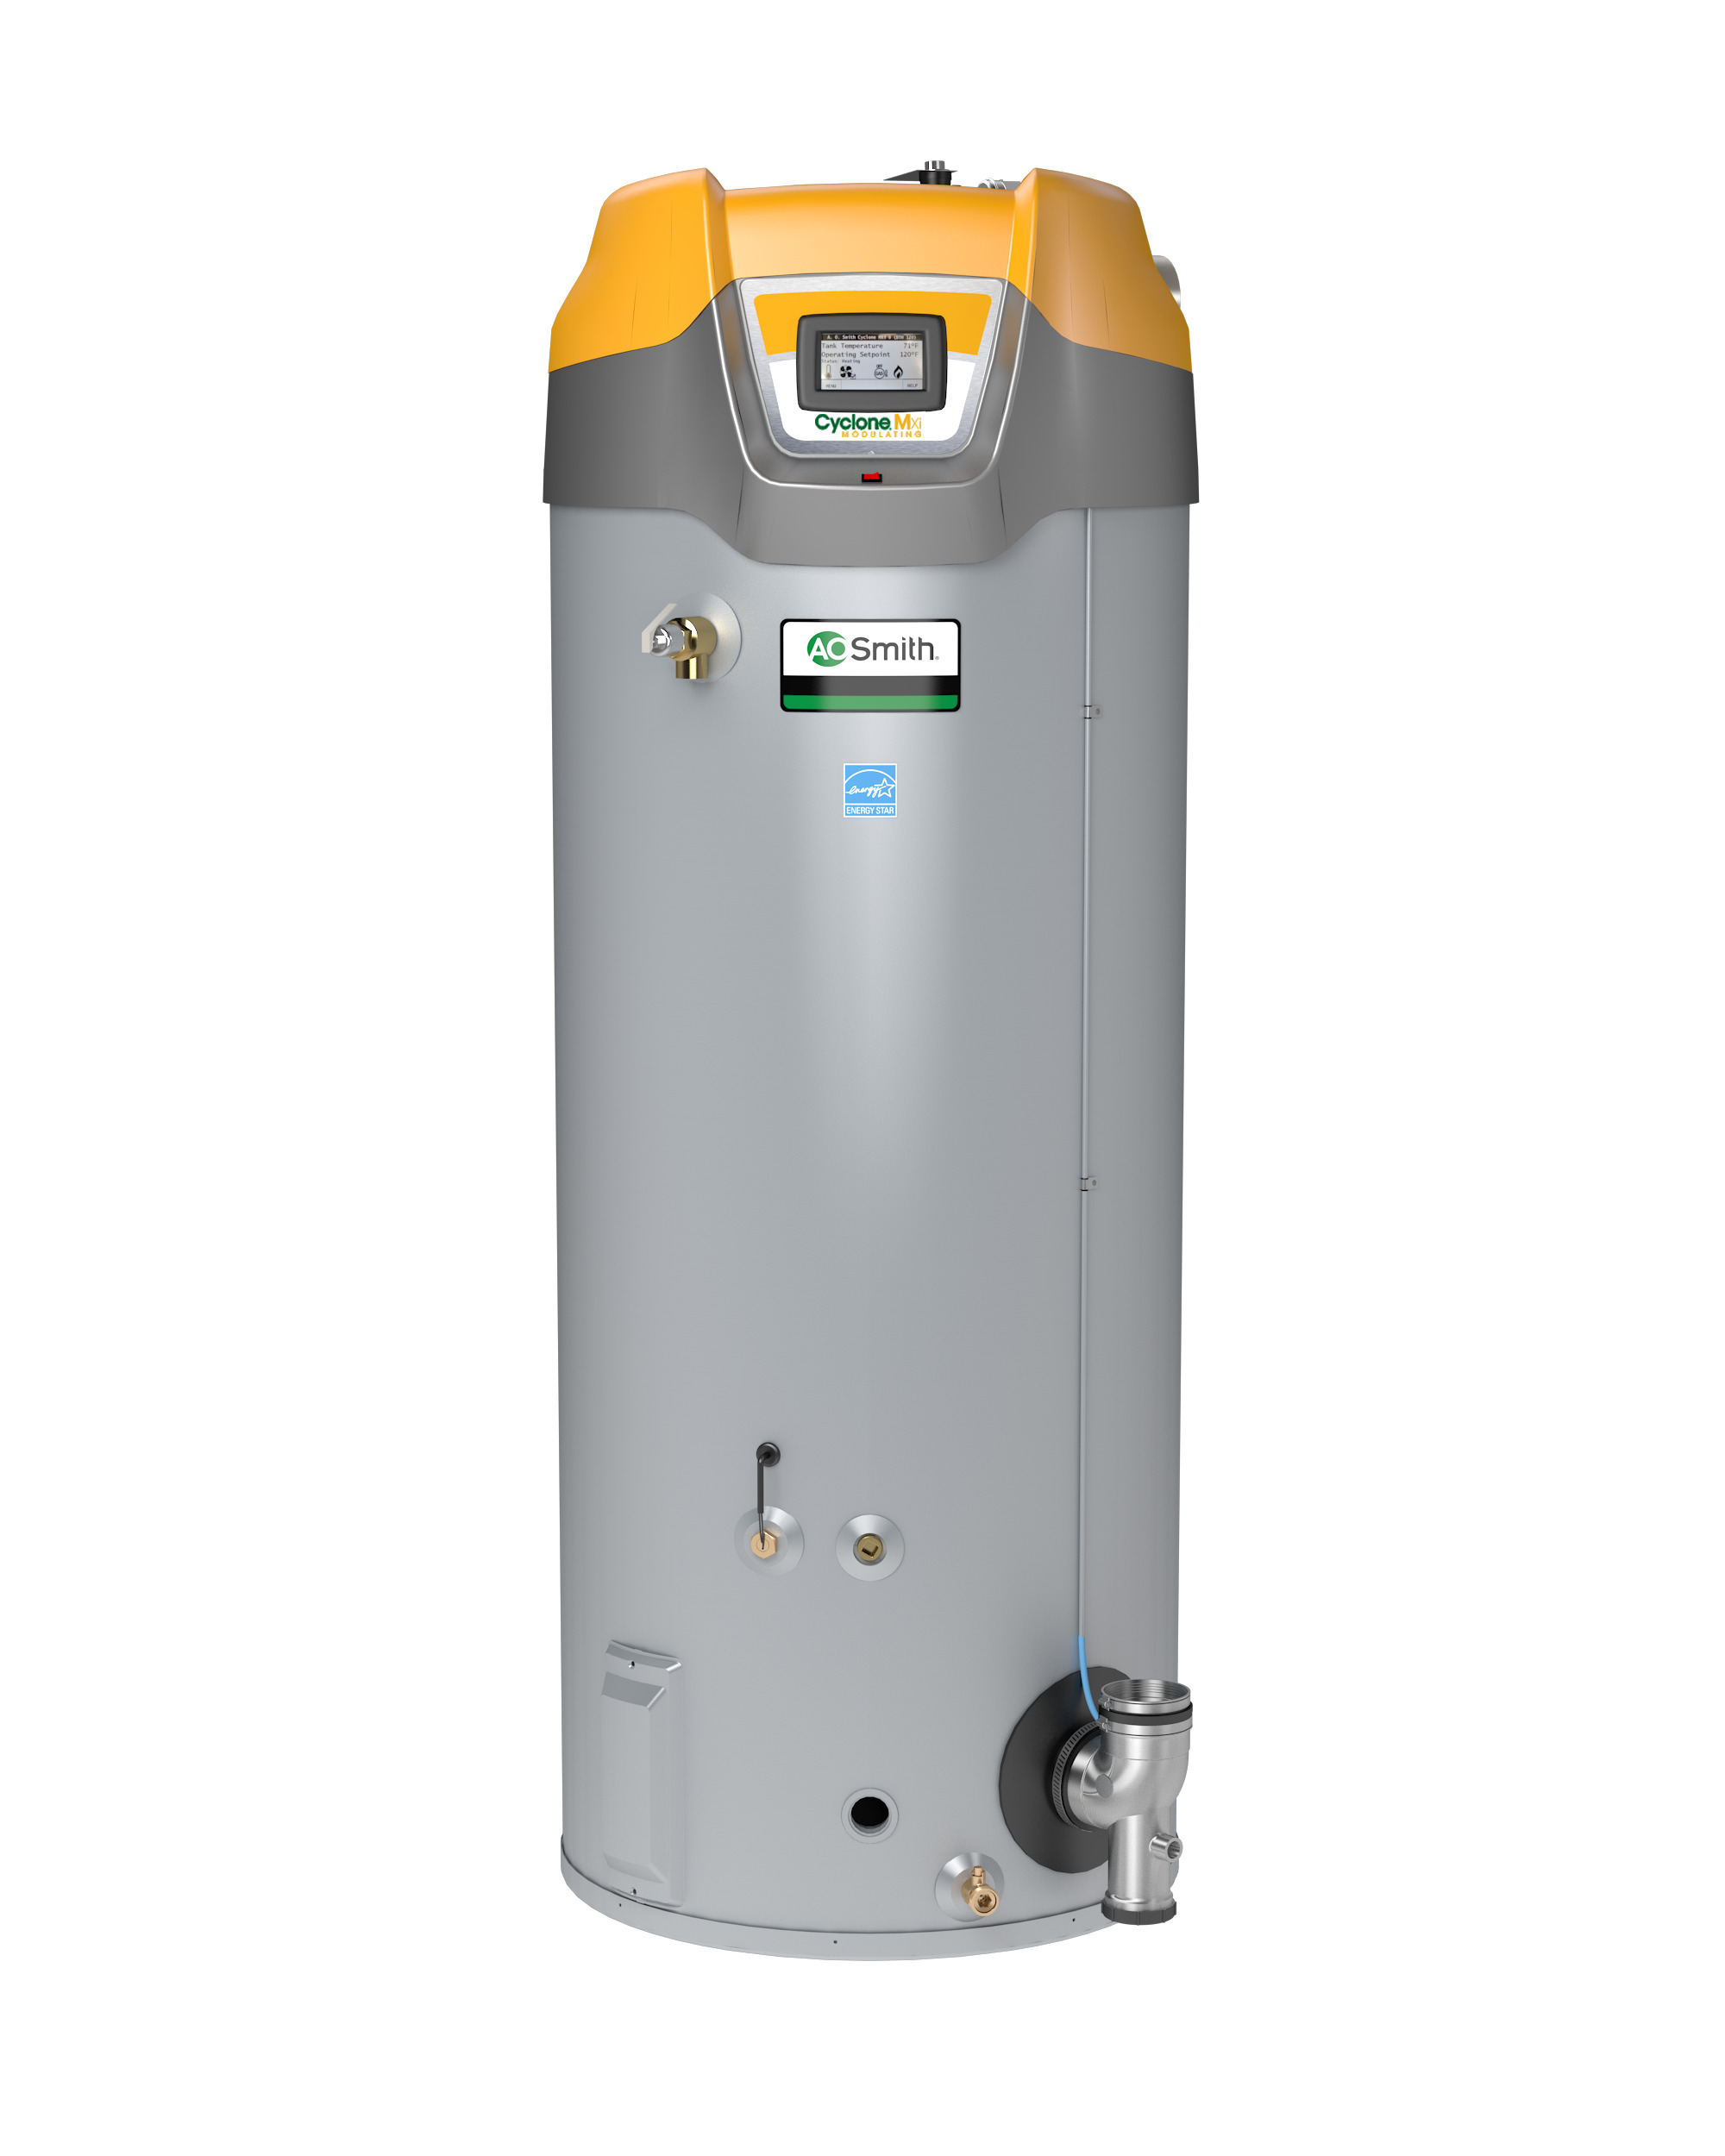 AO SMITH BTH-150A-LP: 100 GALLON, 150,000-BTU, UP TO 98% THERMAL EFFICIENCY, ASME, 3inch VENT, LP (LIQUID PROPANE) CYCLONE Mxi MODULATING COMMERCIAL GAS WATER HEATER